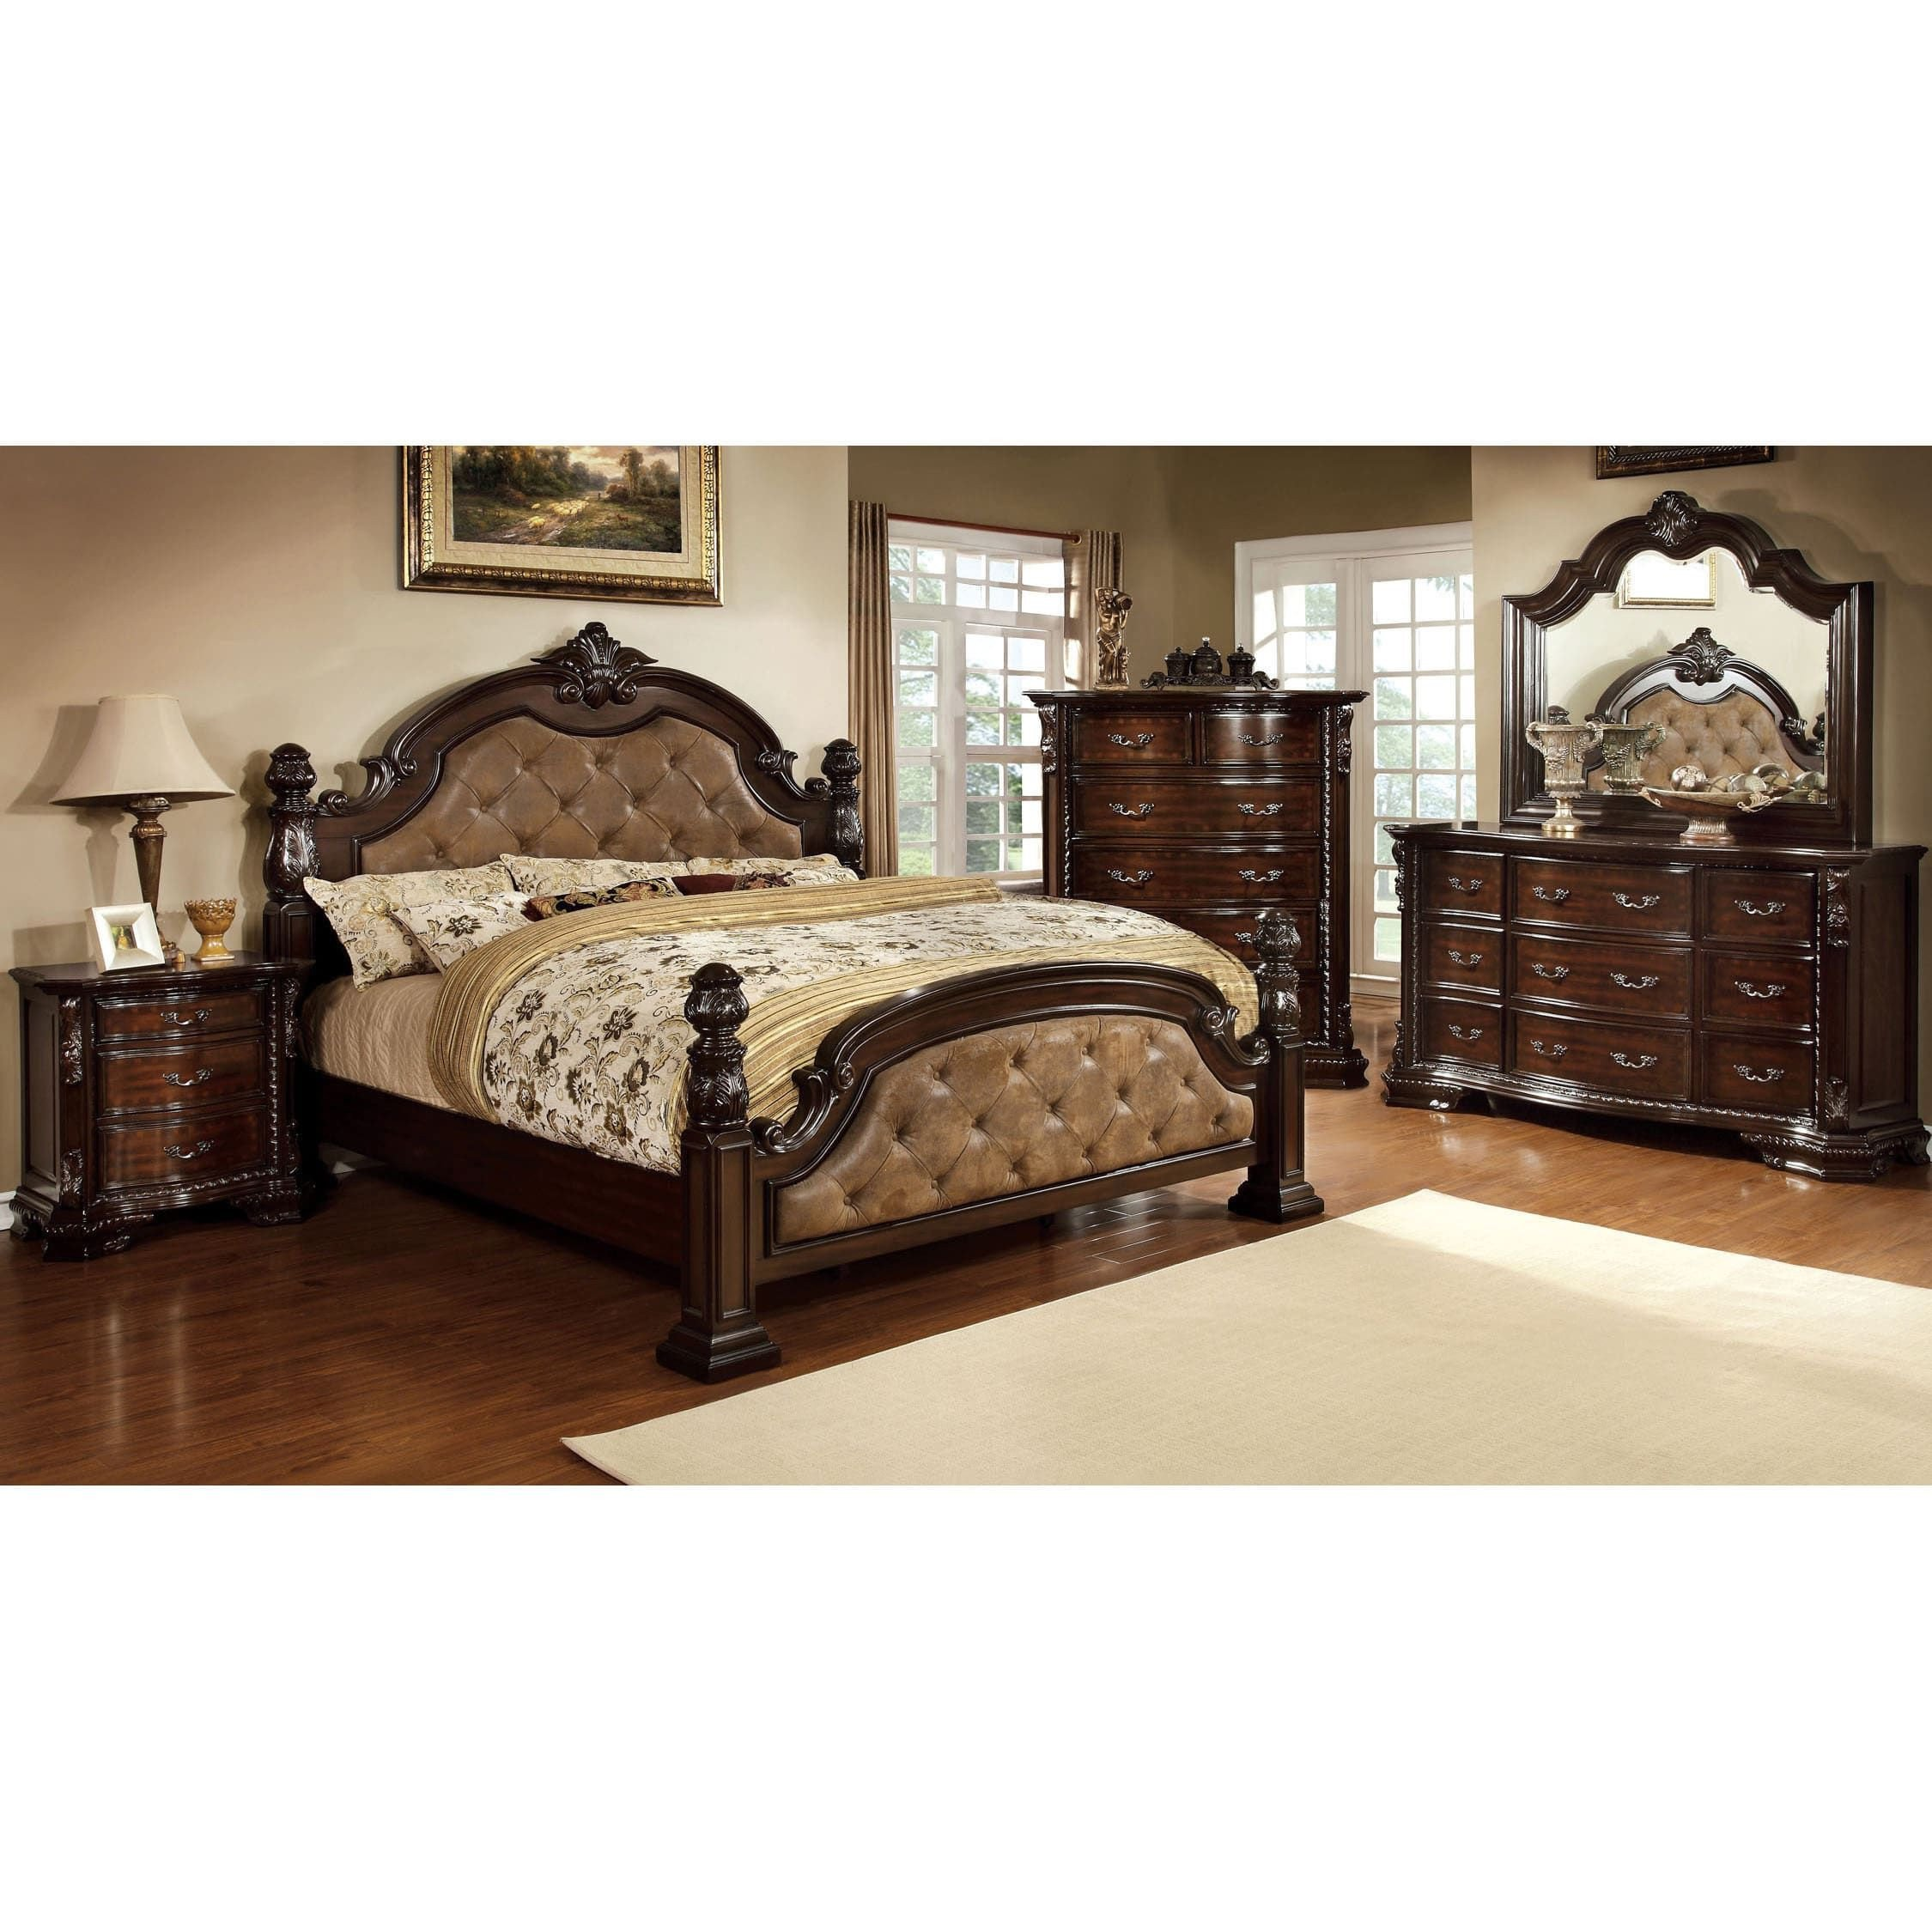 Mirrored Queen Bedroom Set Unique Kassania Traditional 4 Piece Bedroom Set by Foa California